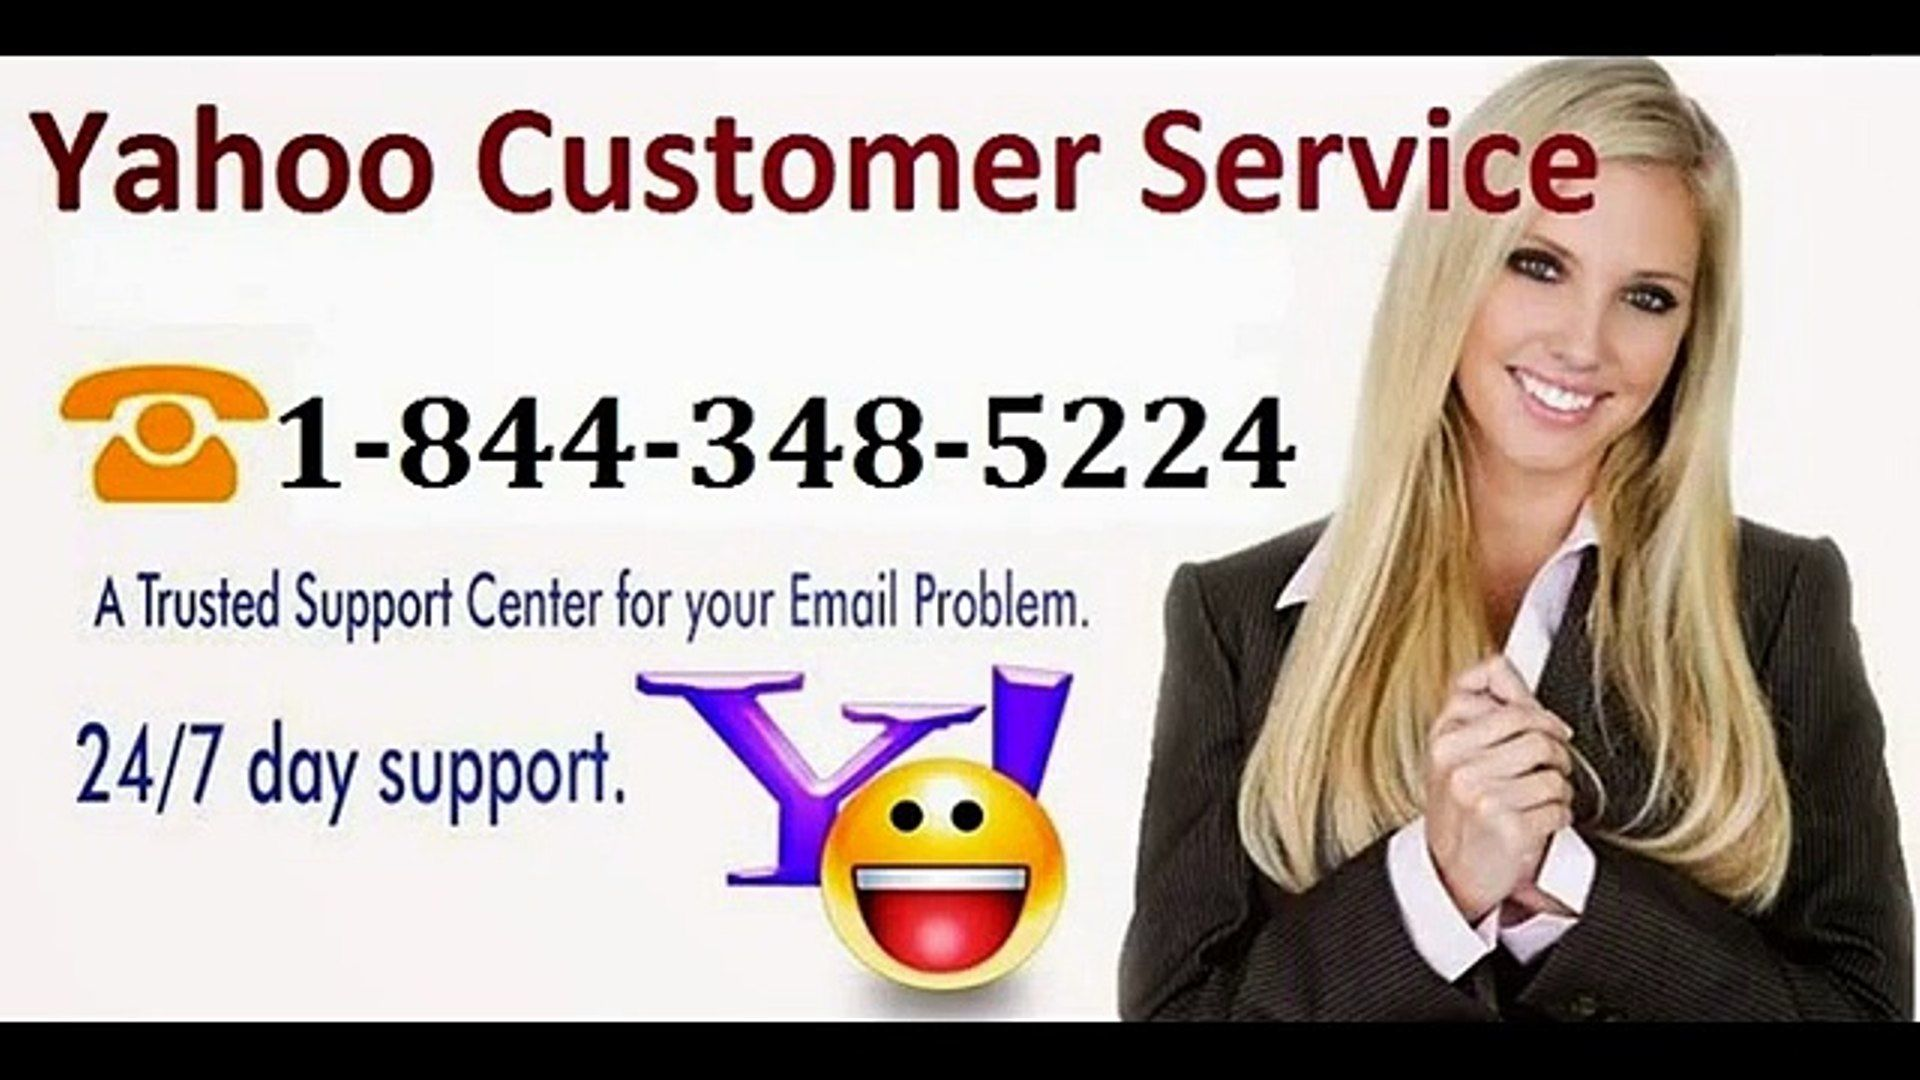 Pin by ALEX HANK on customer service Customer service